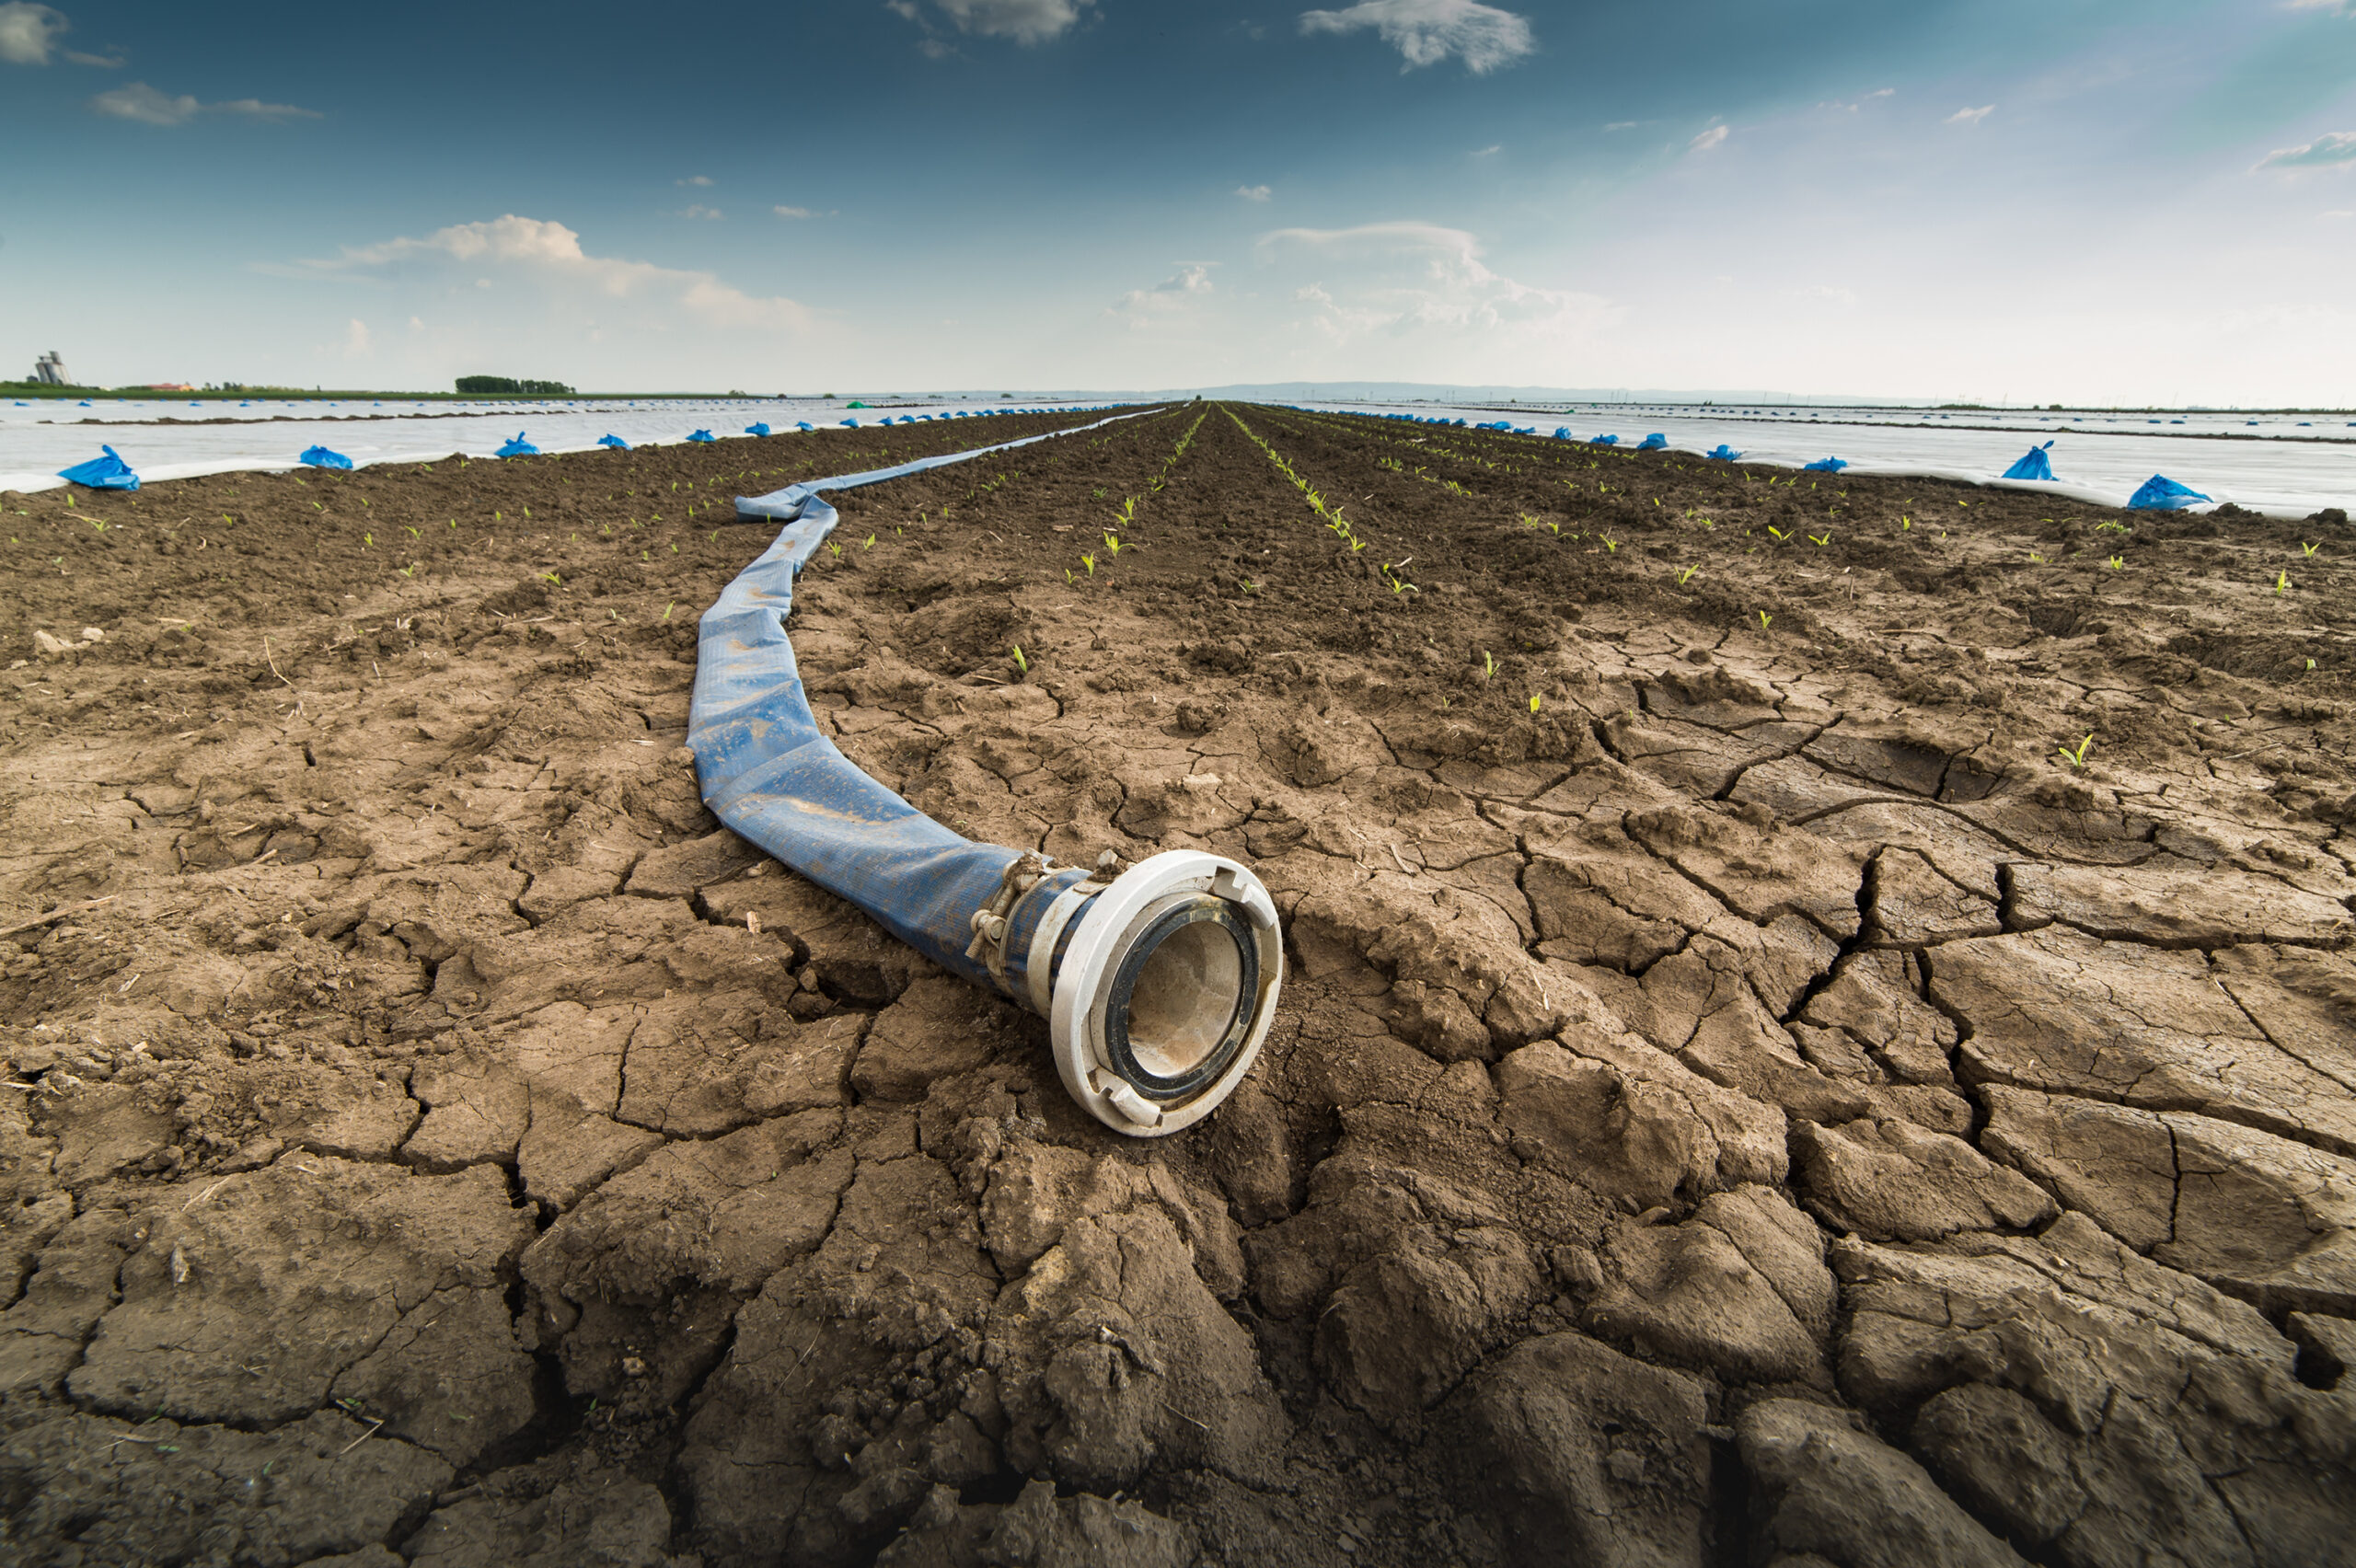 Very dry land - drought - and hose for watering